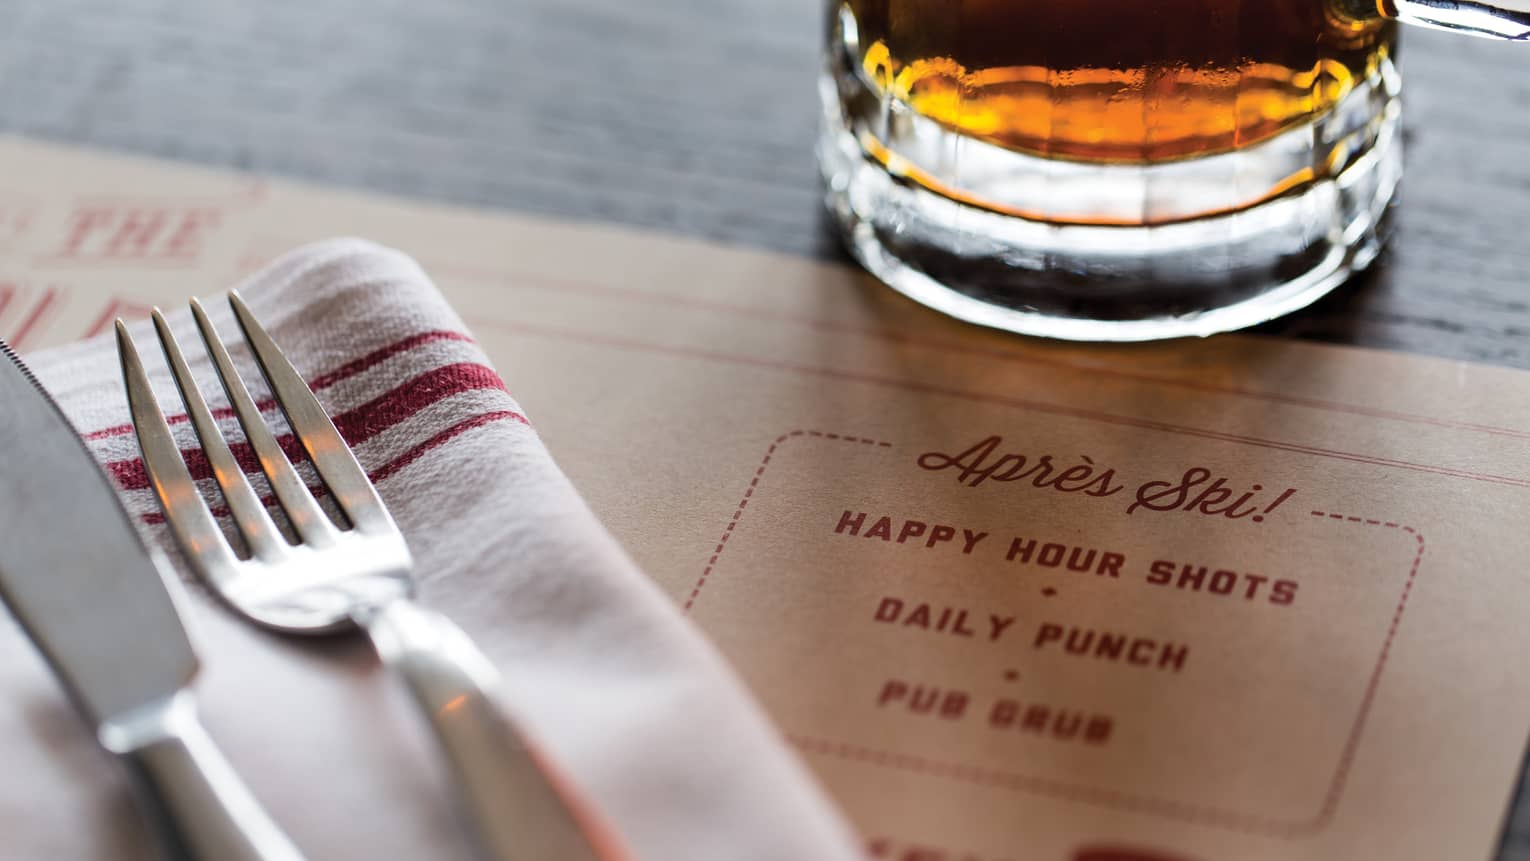 Close-up of knife and fork on napkin on menu near glass with liquor